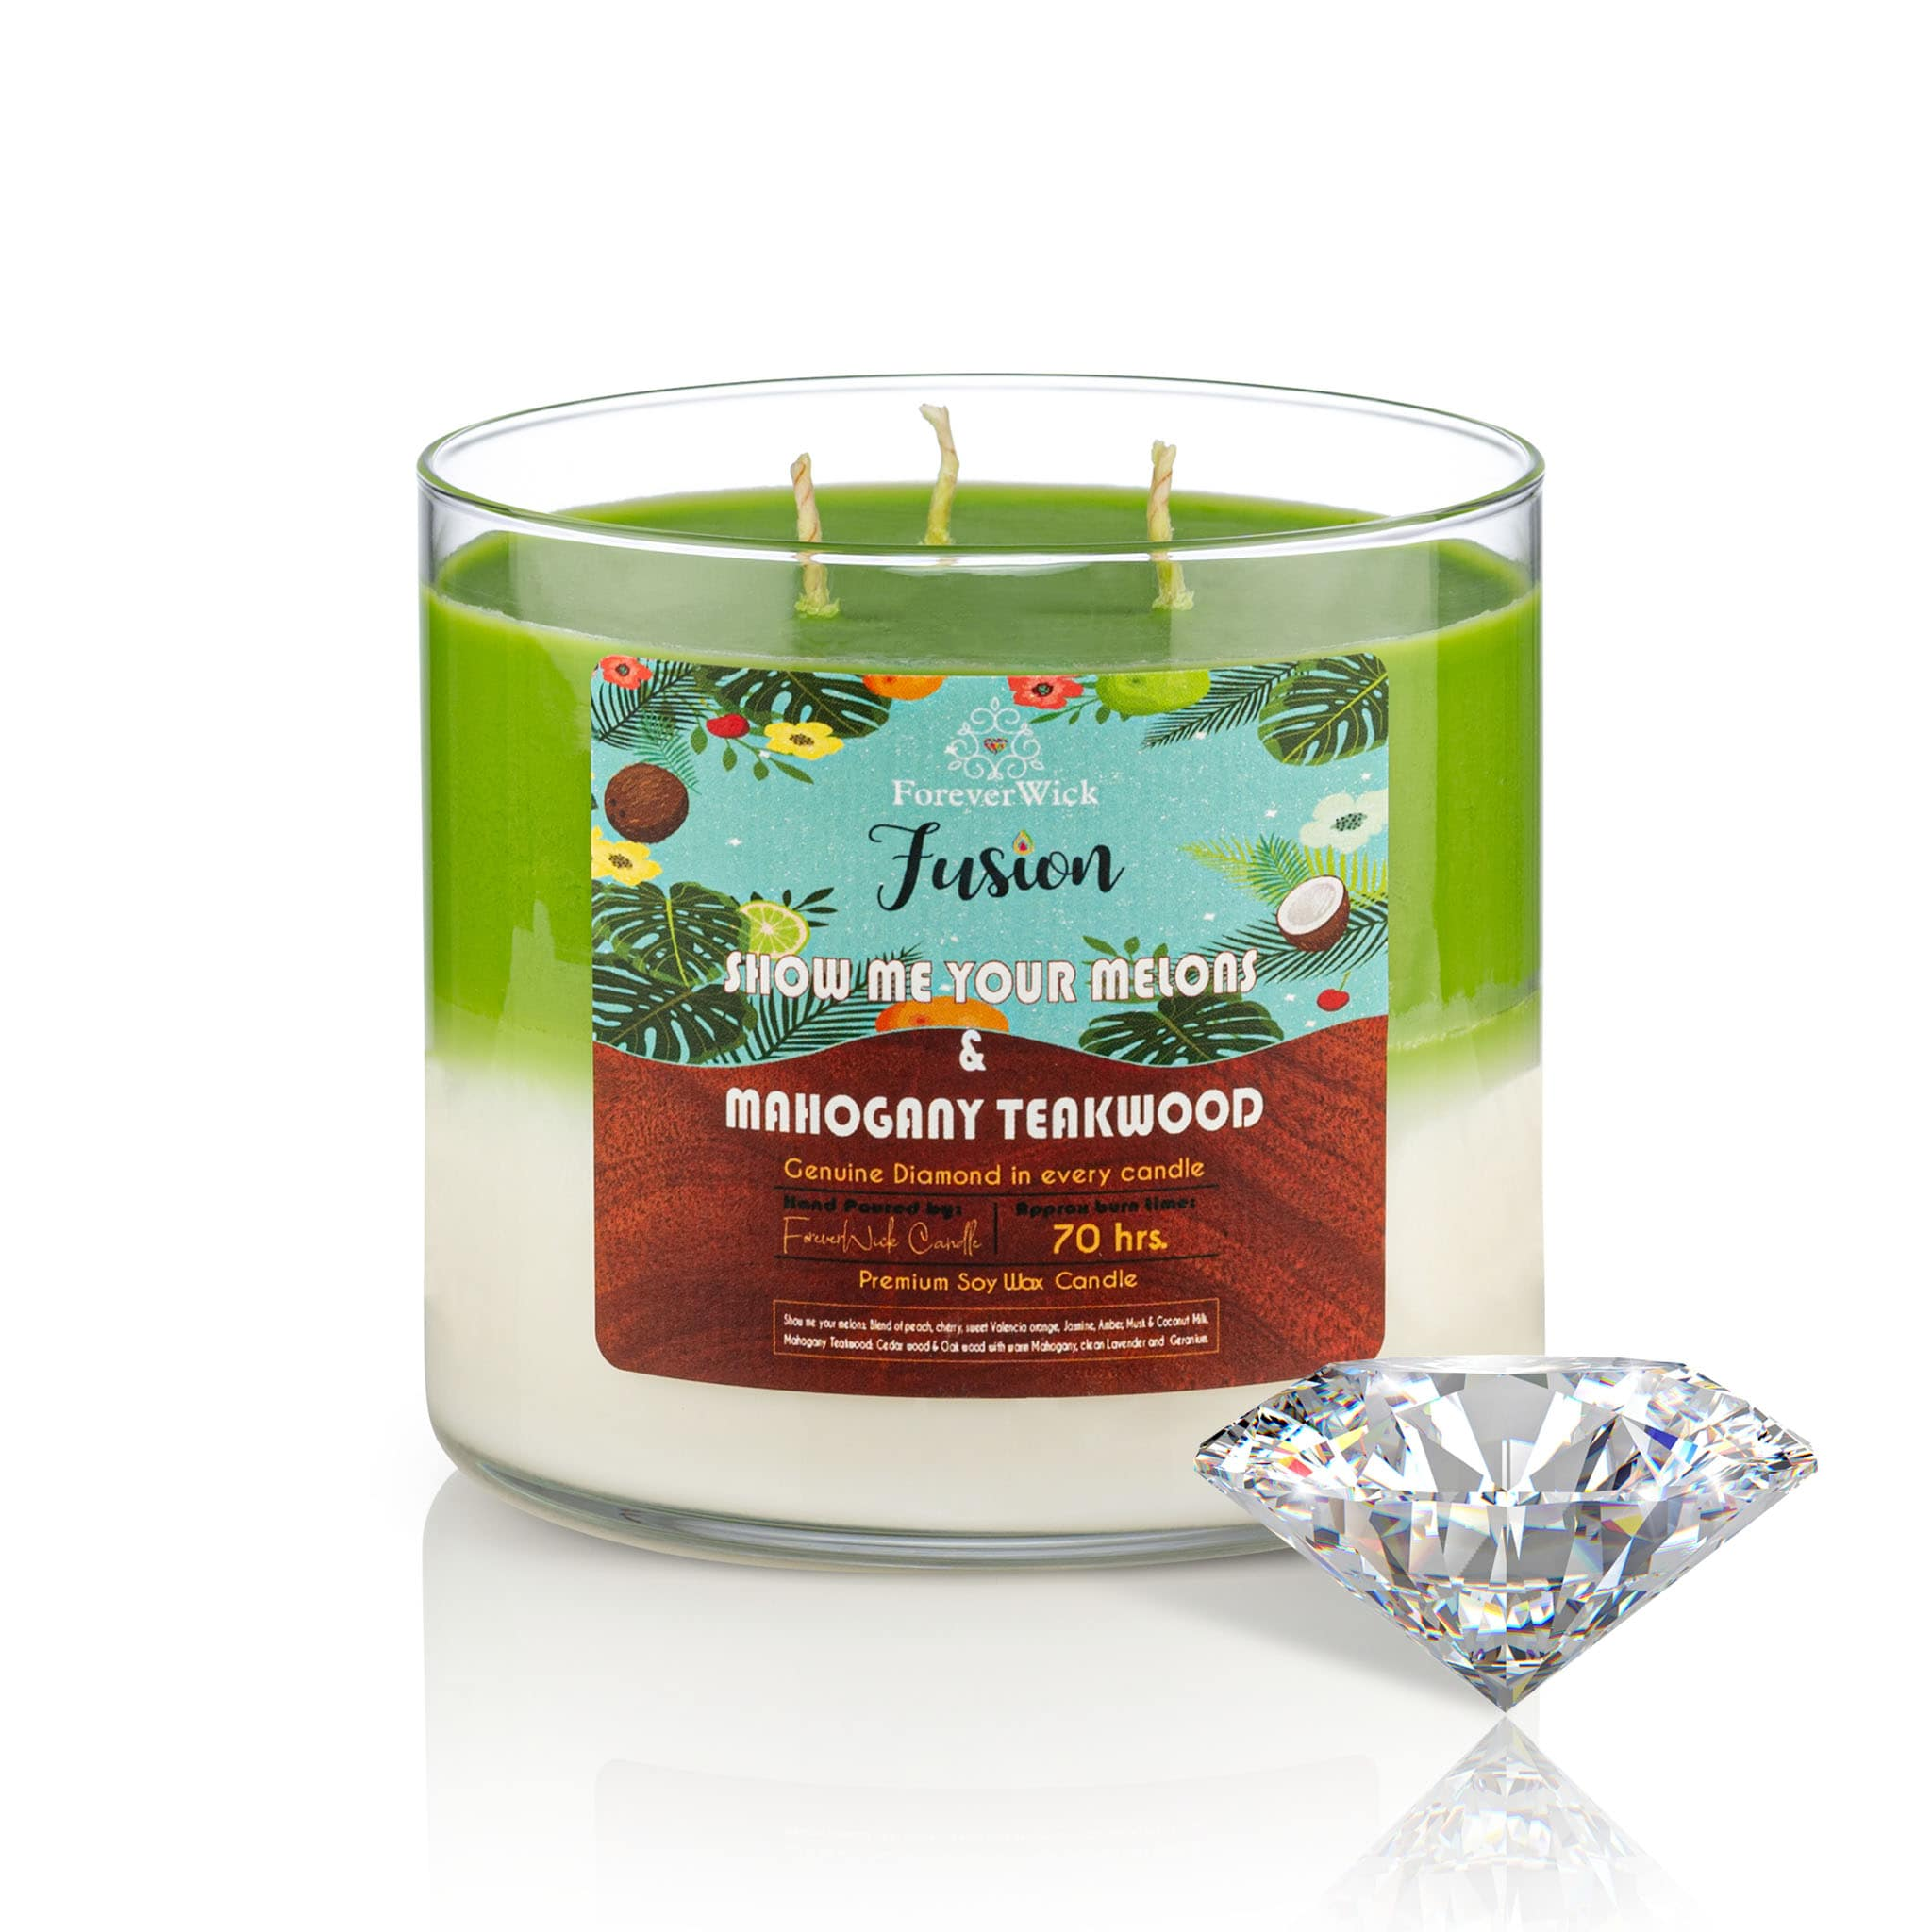 Show Me Your Melons & Mahogany Teakwood Fusion Diamond Candle